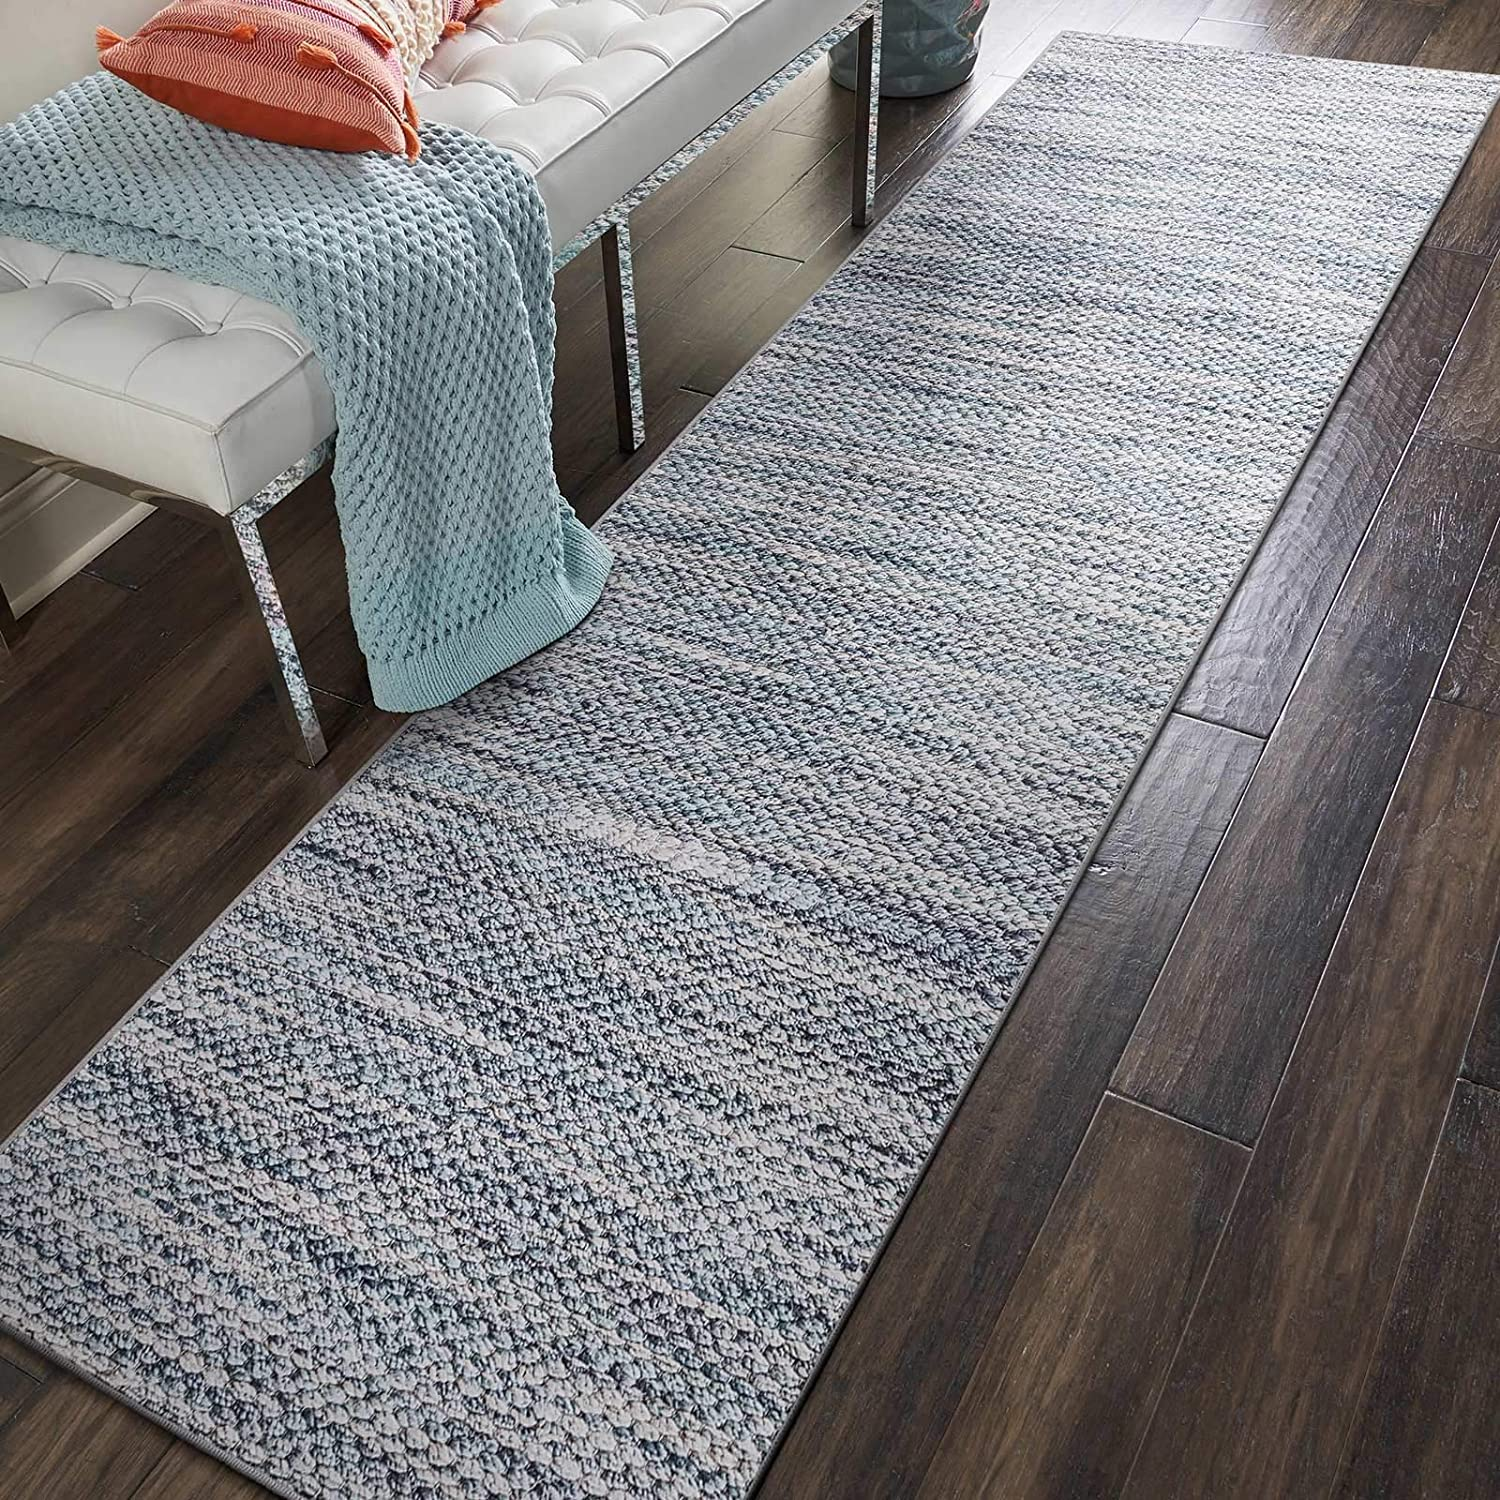 Black//Light Grey Decomall Runner Rug for Hallyway Diamond Geometric Printed Long Carpet for Kitchen Entryway 2.5x9